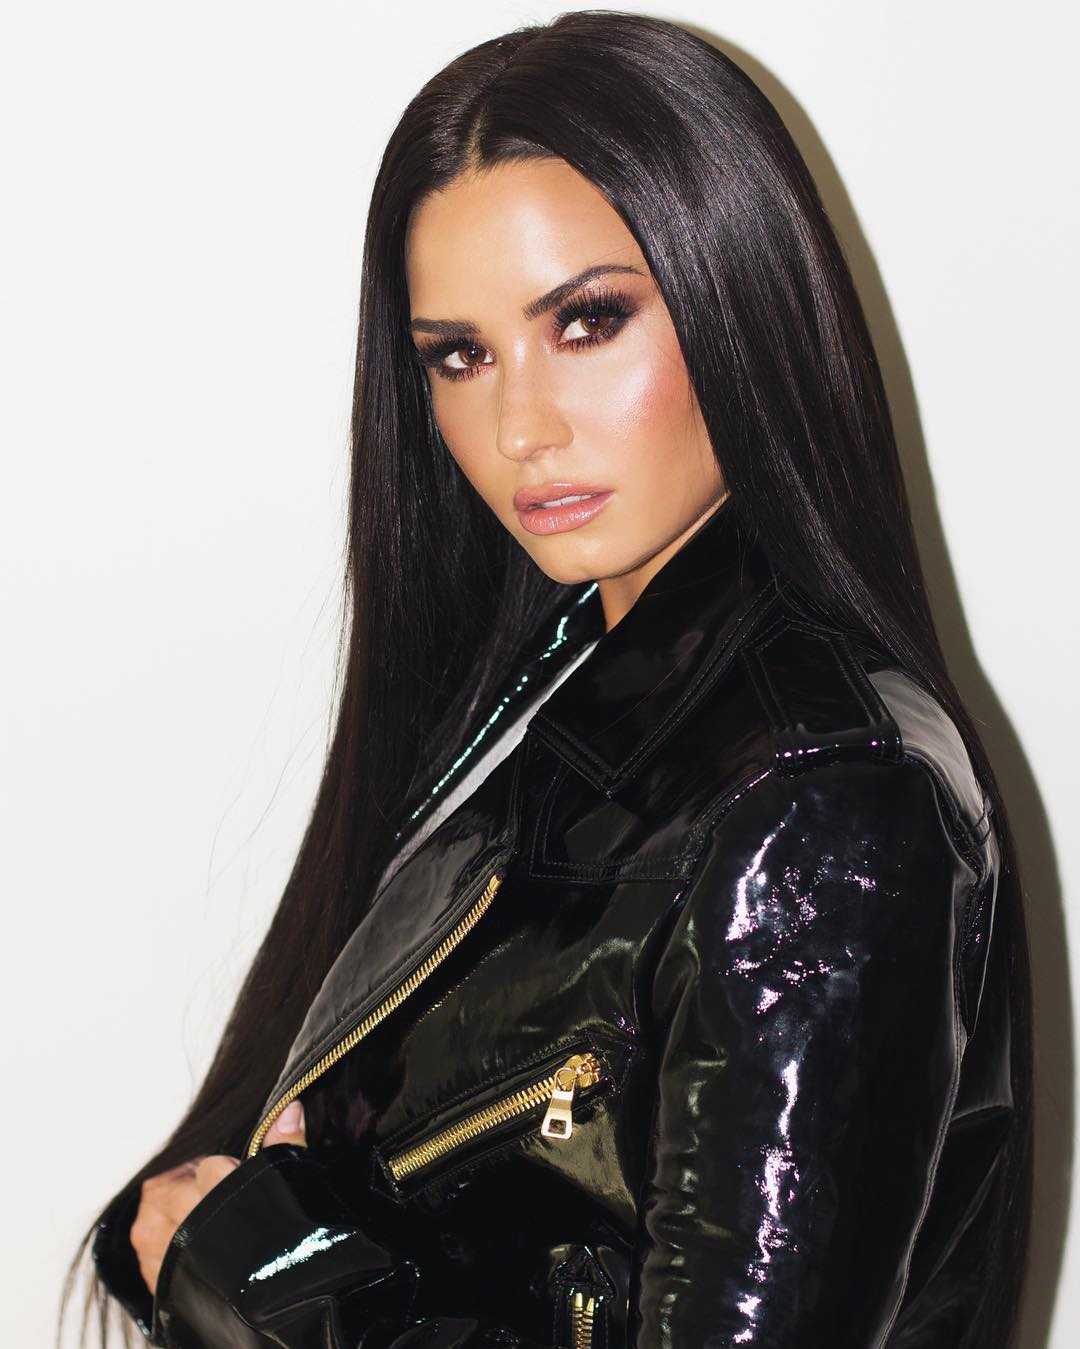 Demi Lovato Hot in Black